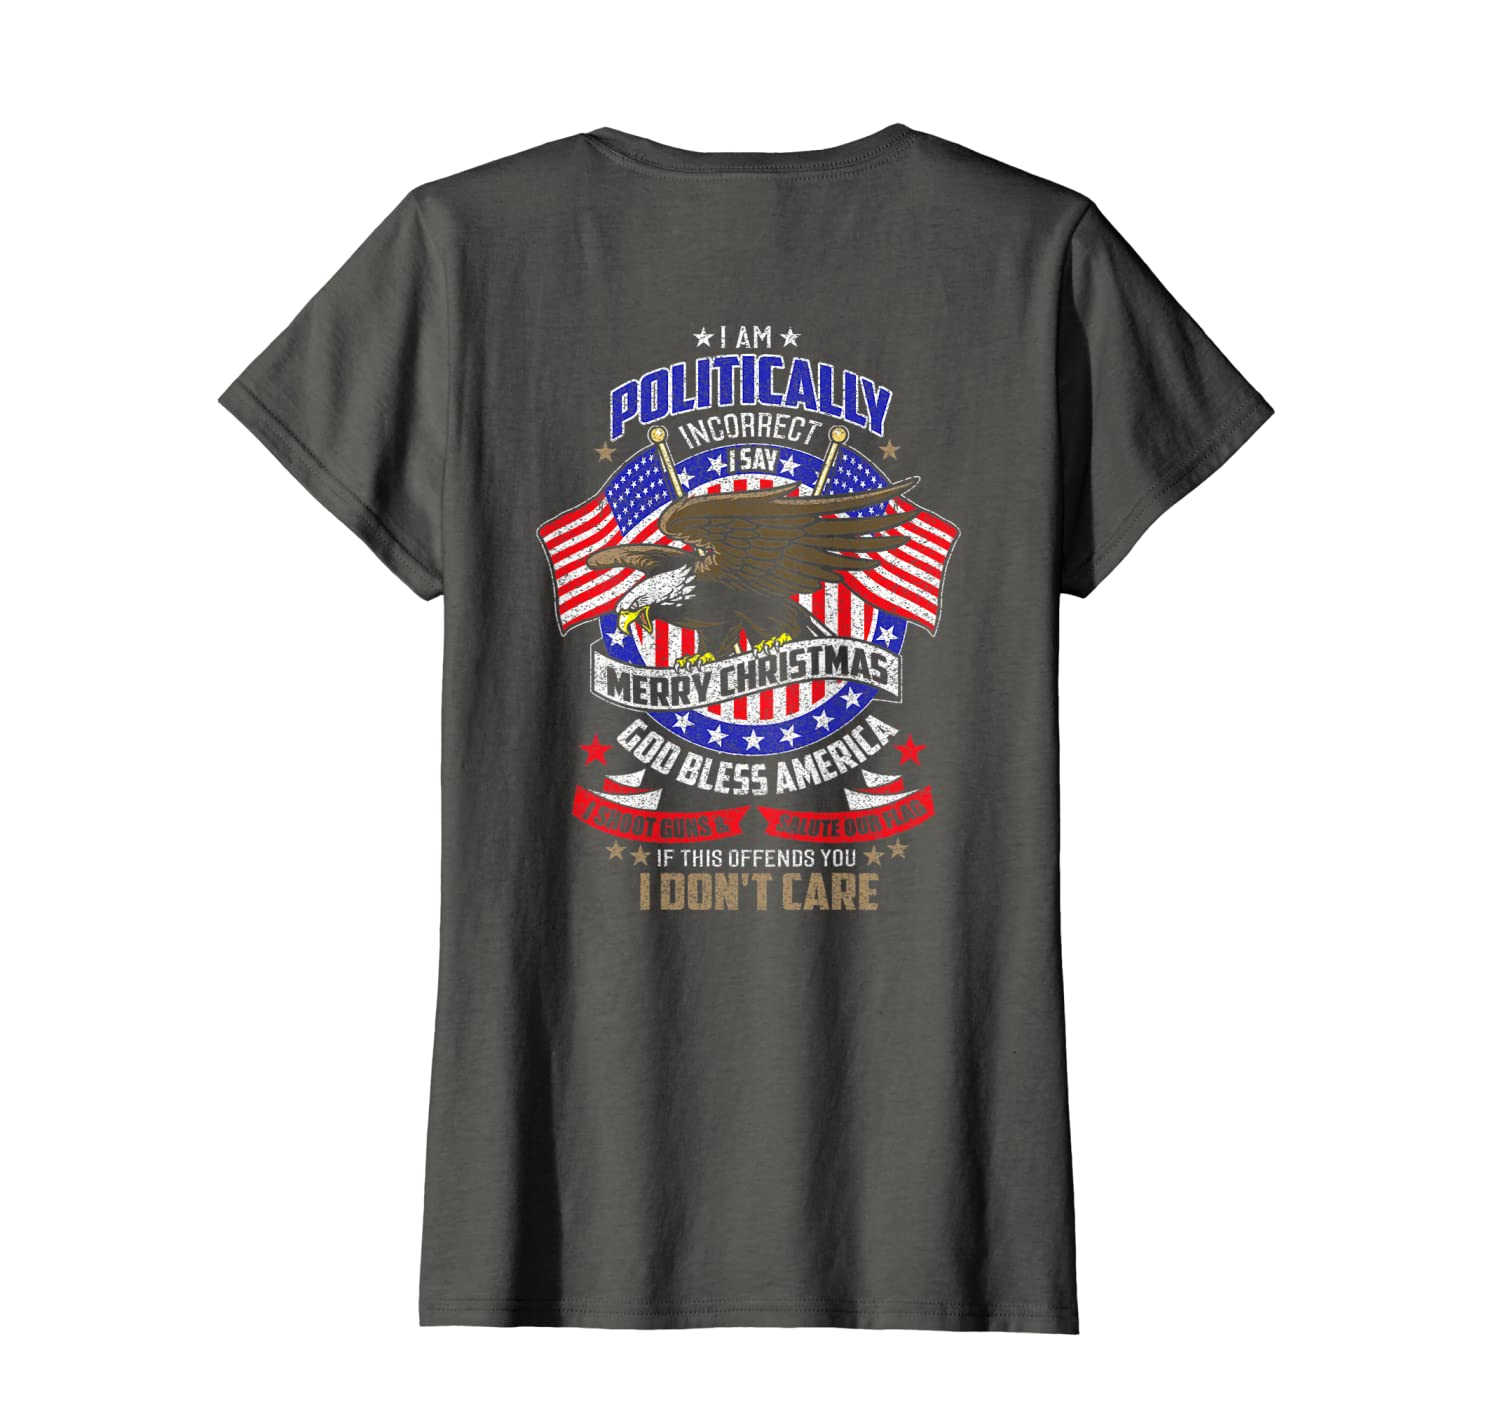 (Print On Back) Politically Incorrect America Patriot Tshirt